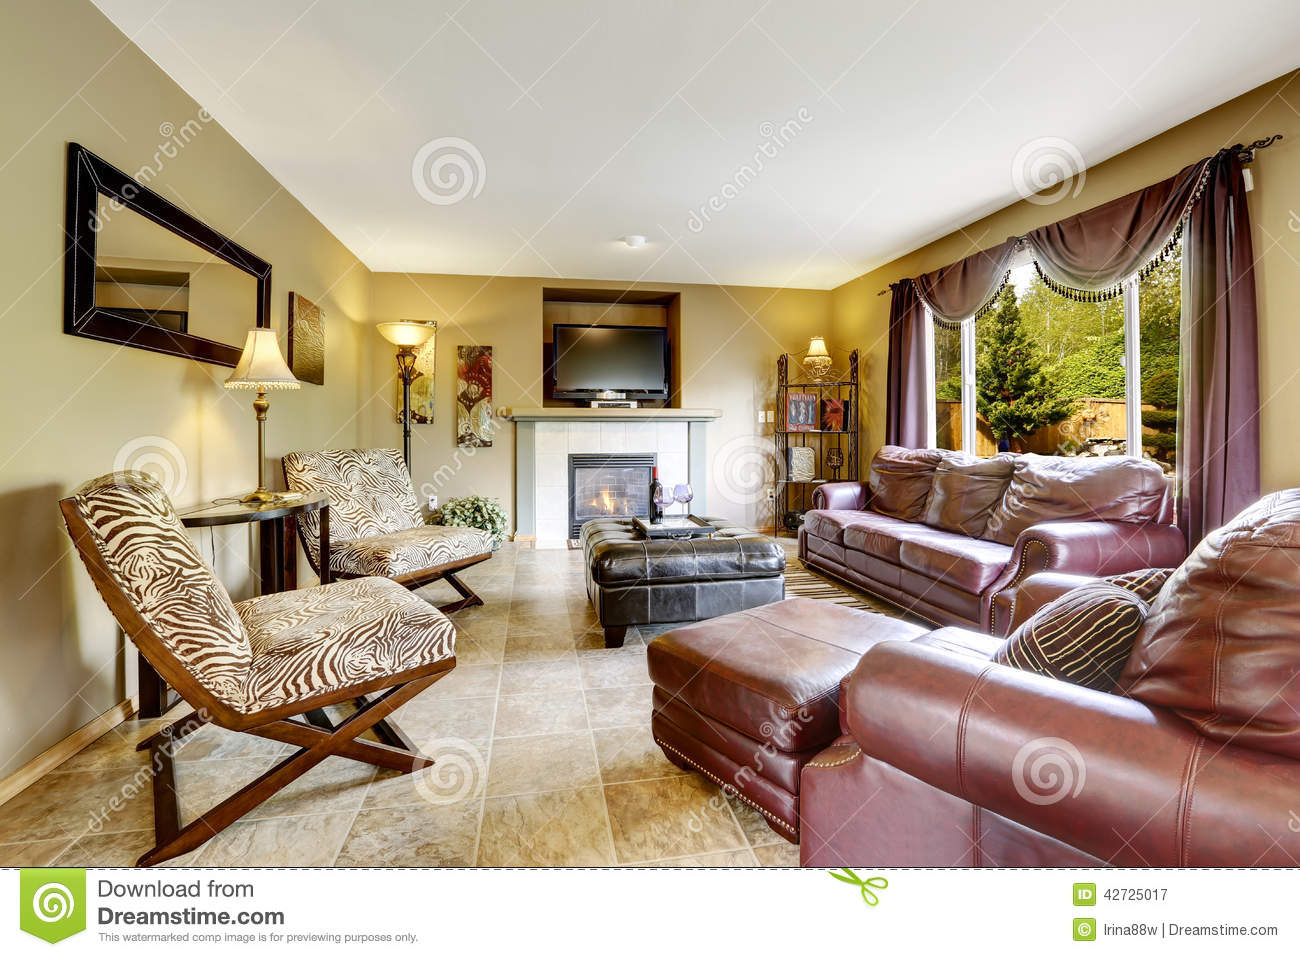 Luxury Living Room With Leather Furniture Set Stock Image